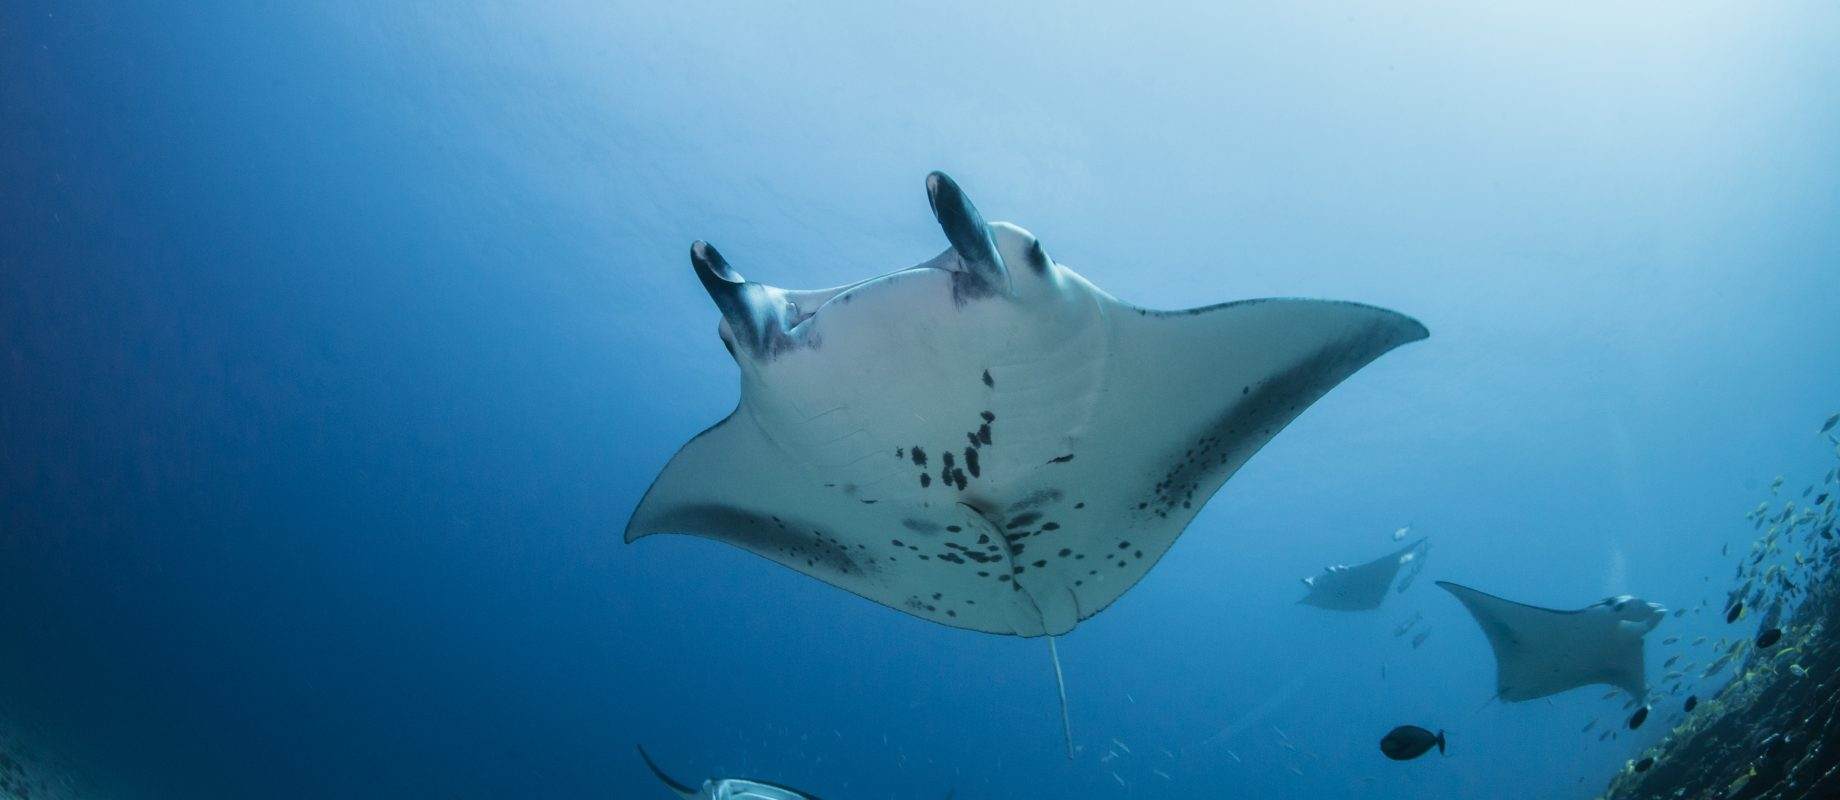 Diving on the Equator